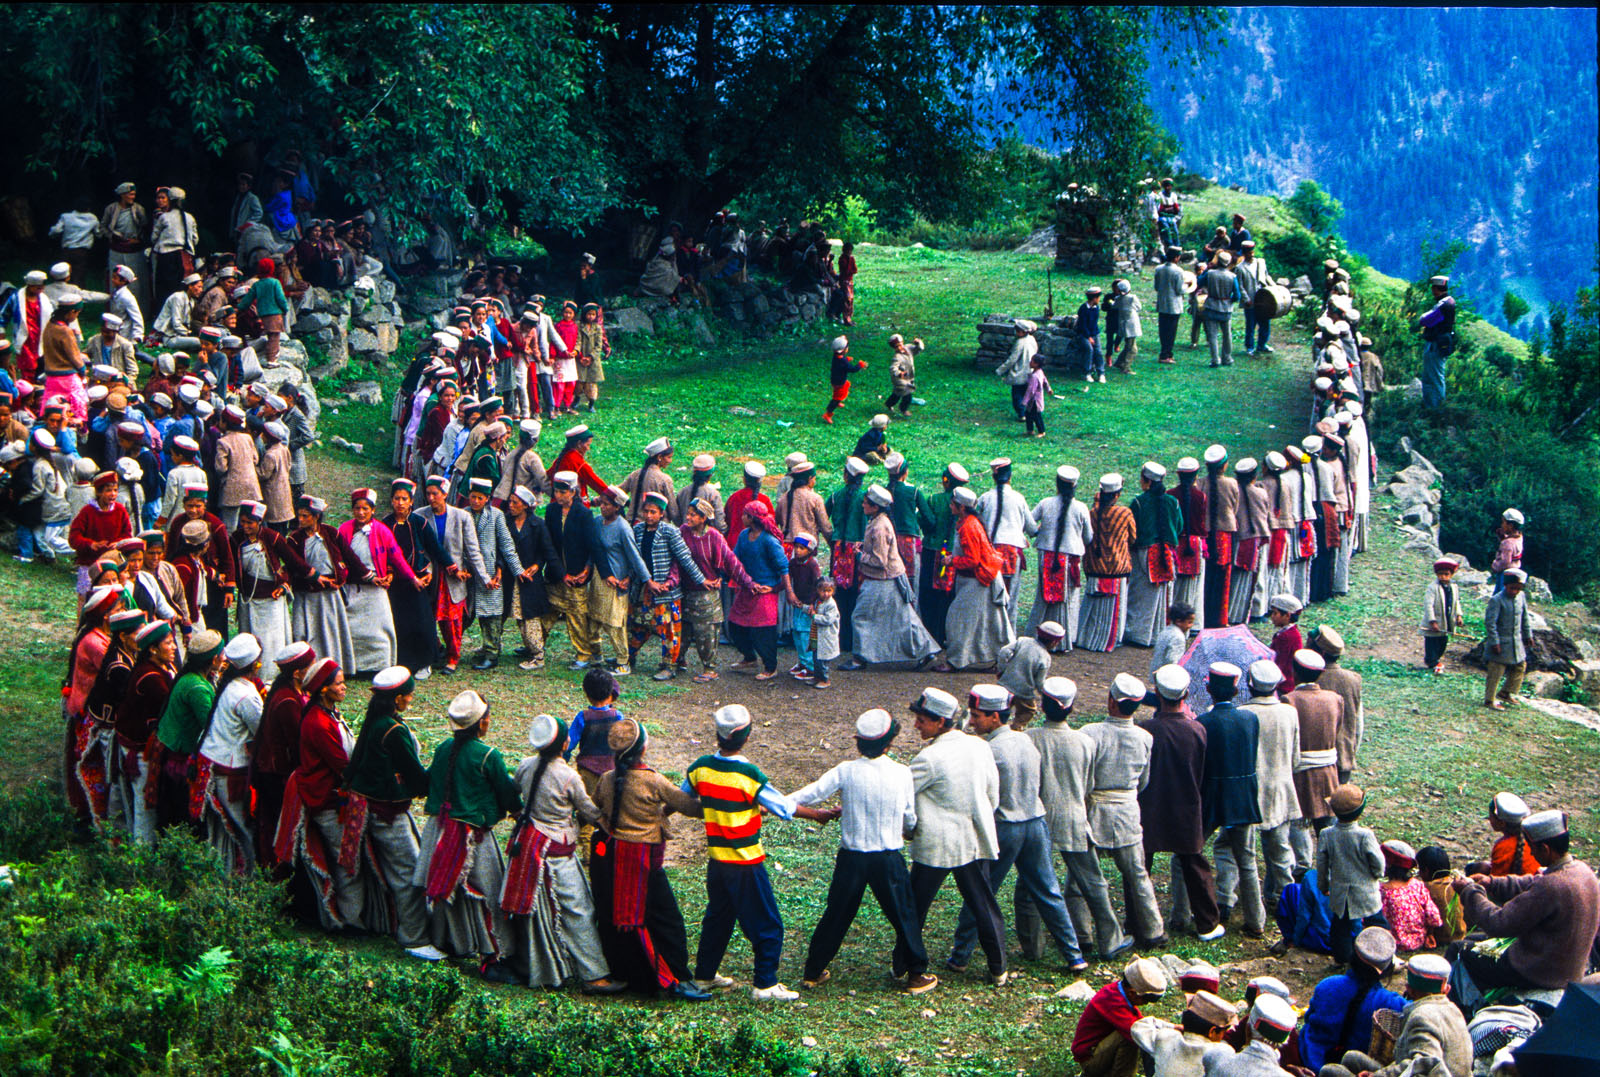 Phulaich Festival, celebrated at Kinnaur District of Himachal Pradesh annually in September, is a festival of flowers. India. 1993.